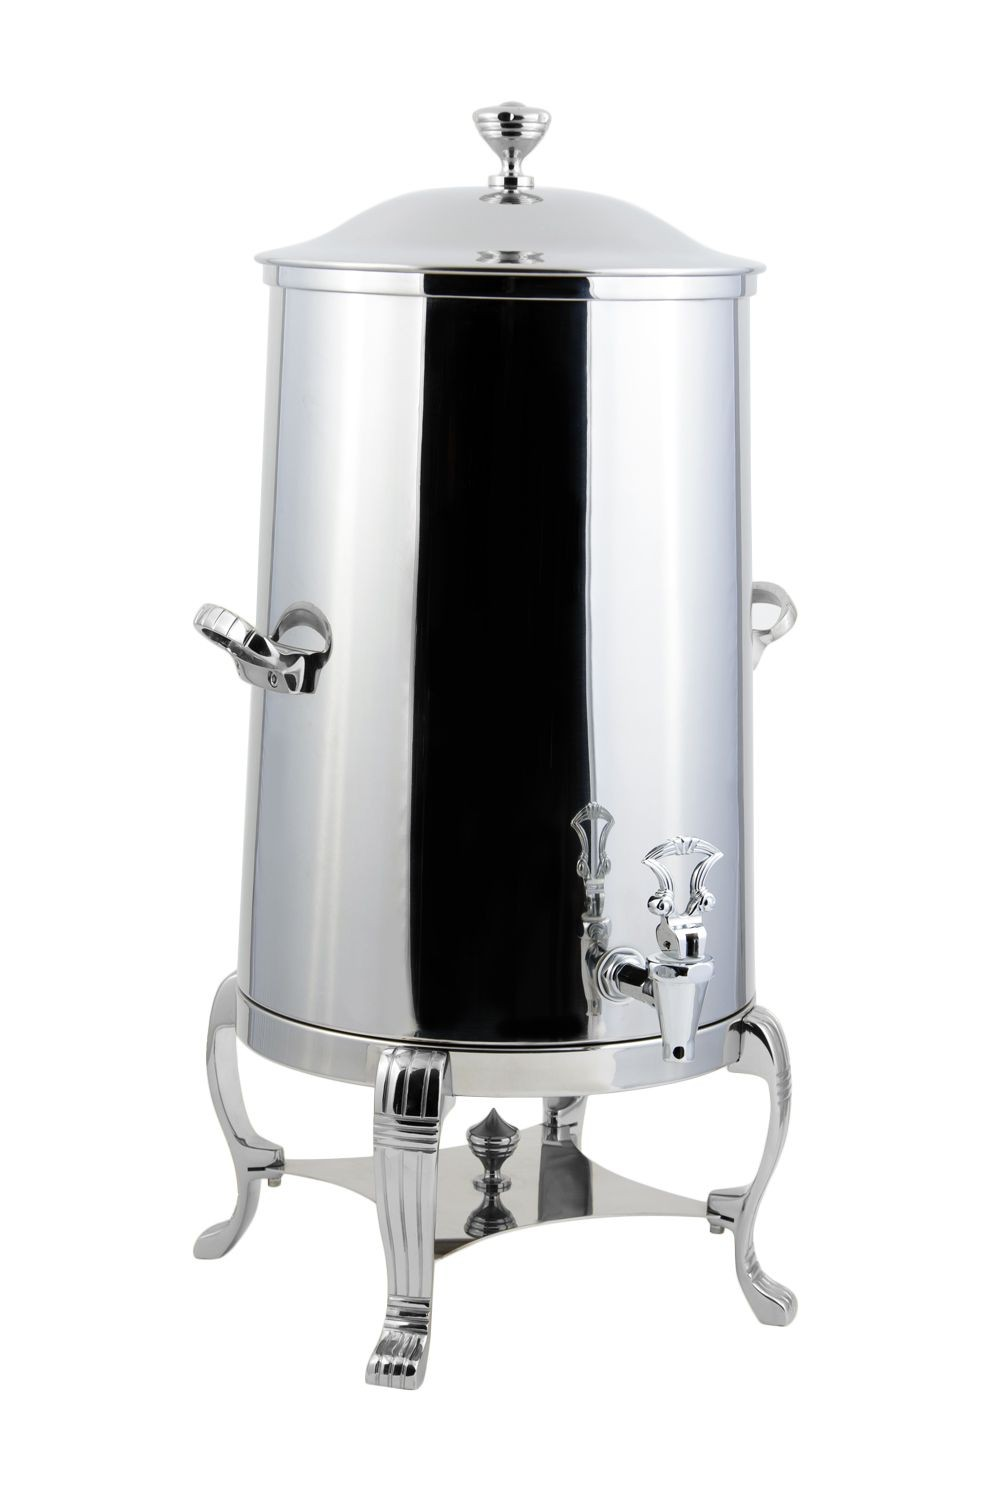 Bon Chef 40003CH Aurora Insulated Coffee Urn with Chrome Trim, 3 Gallon